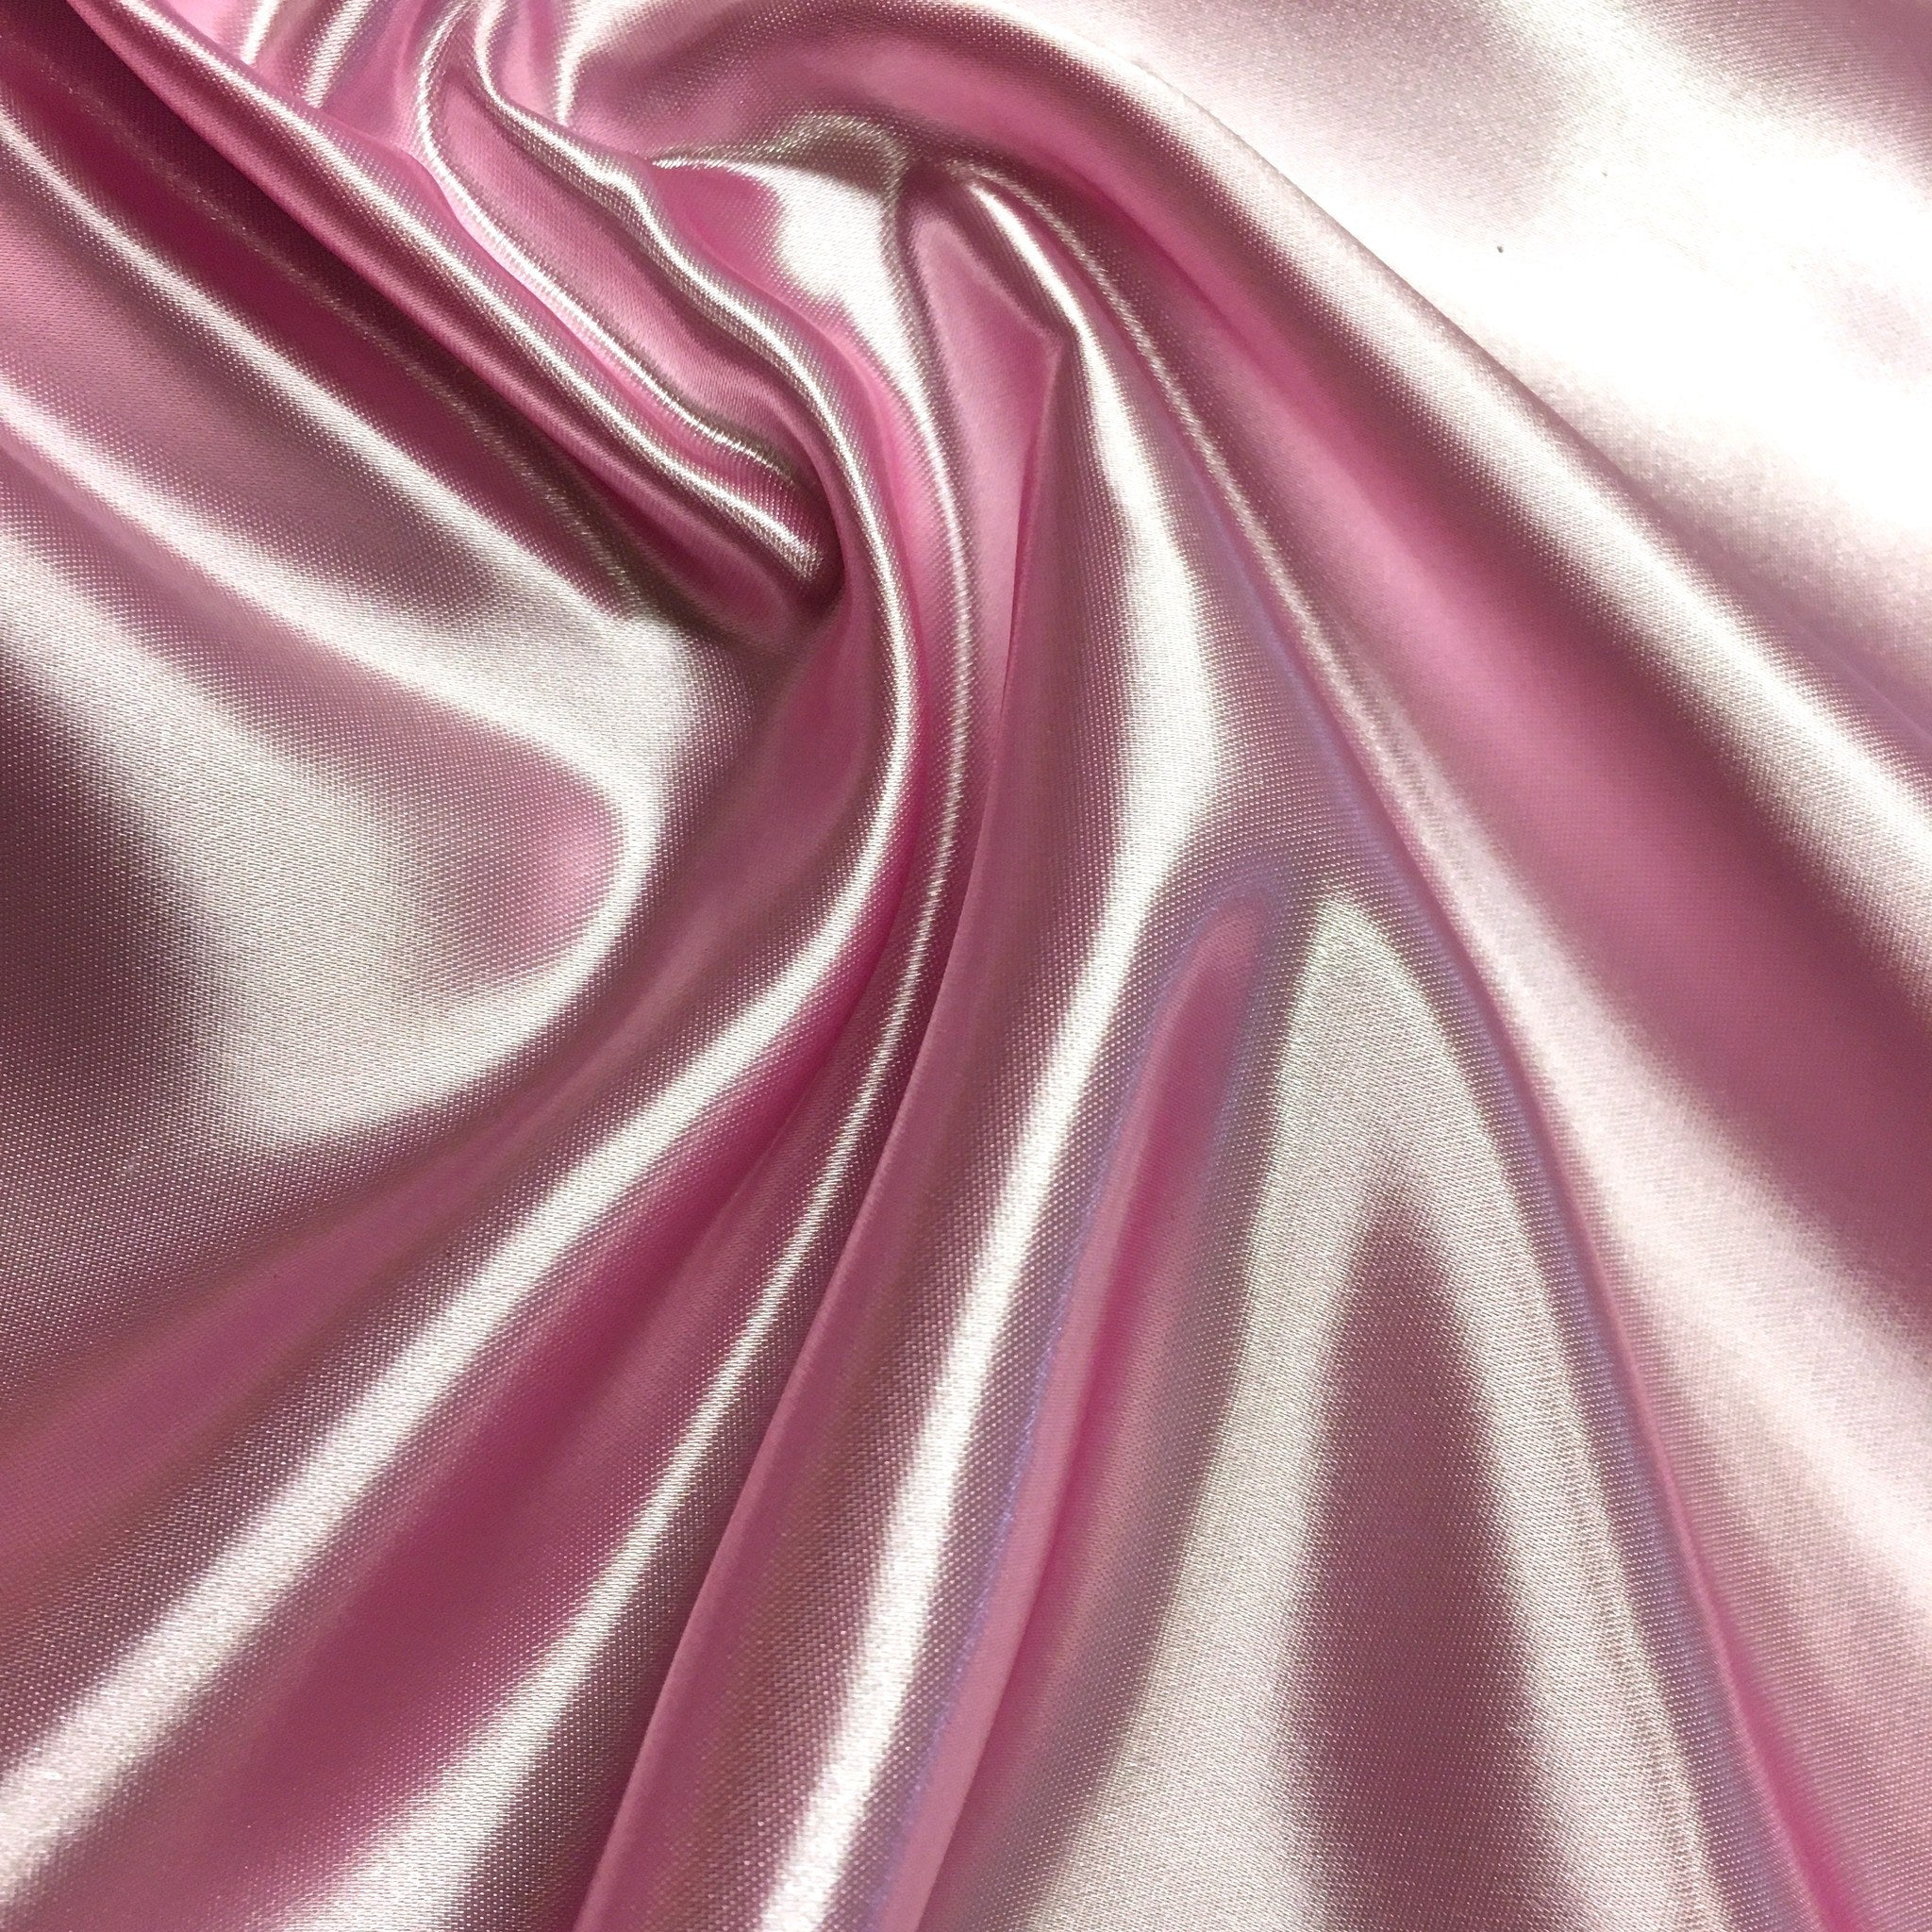 Bridal satin fabric 60 wide 100 polyester 10 for Satin fabric